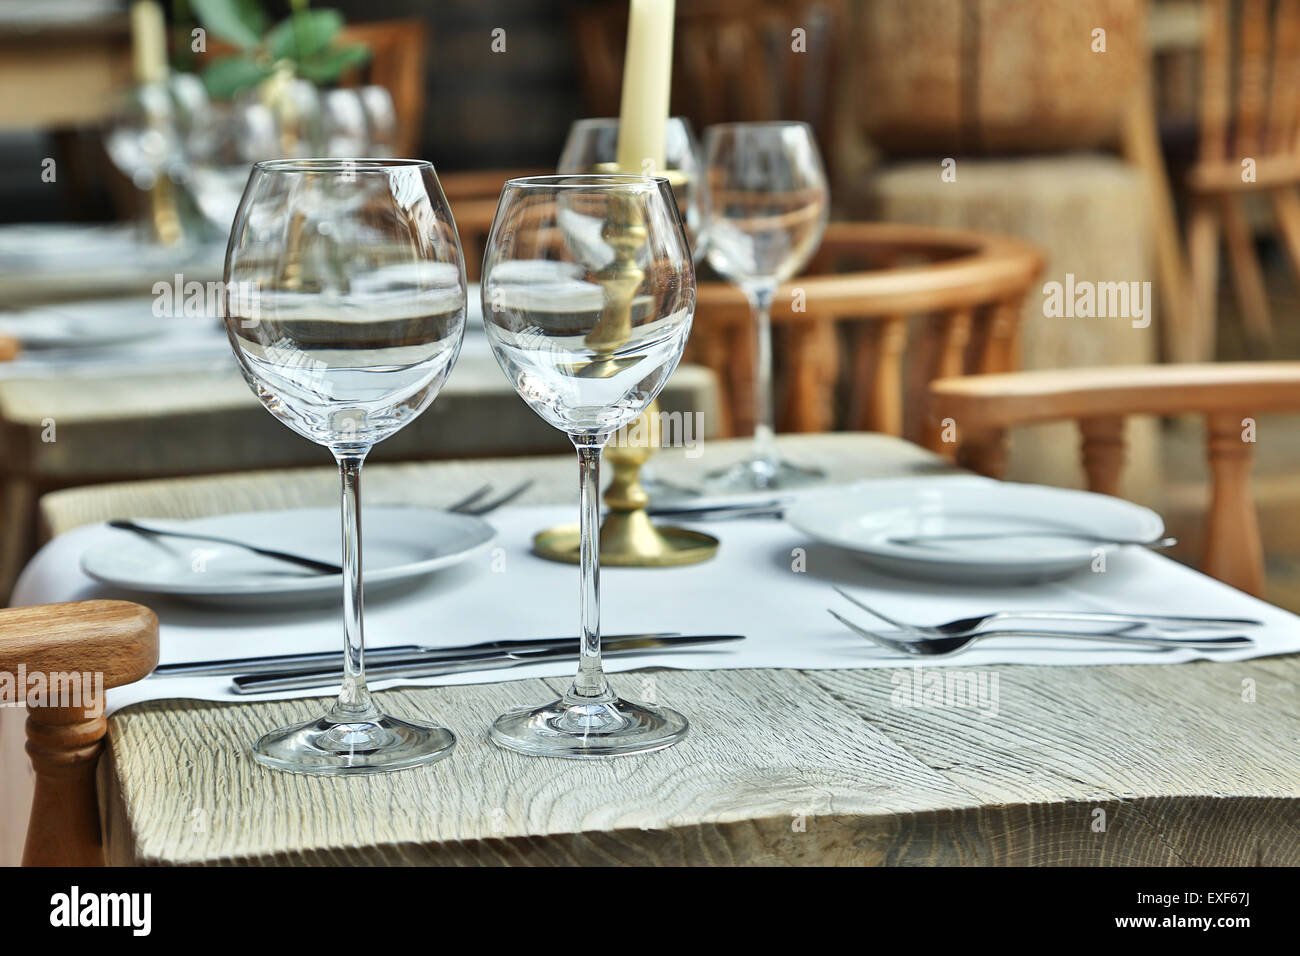 Table Setting With Wine Glasses At The Vintage Cafe Stock Photo